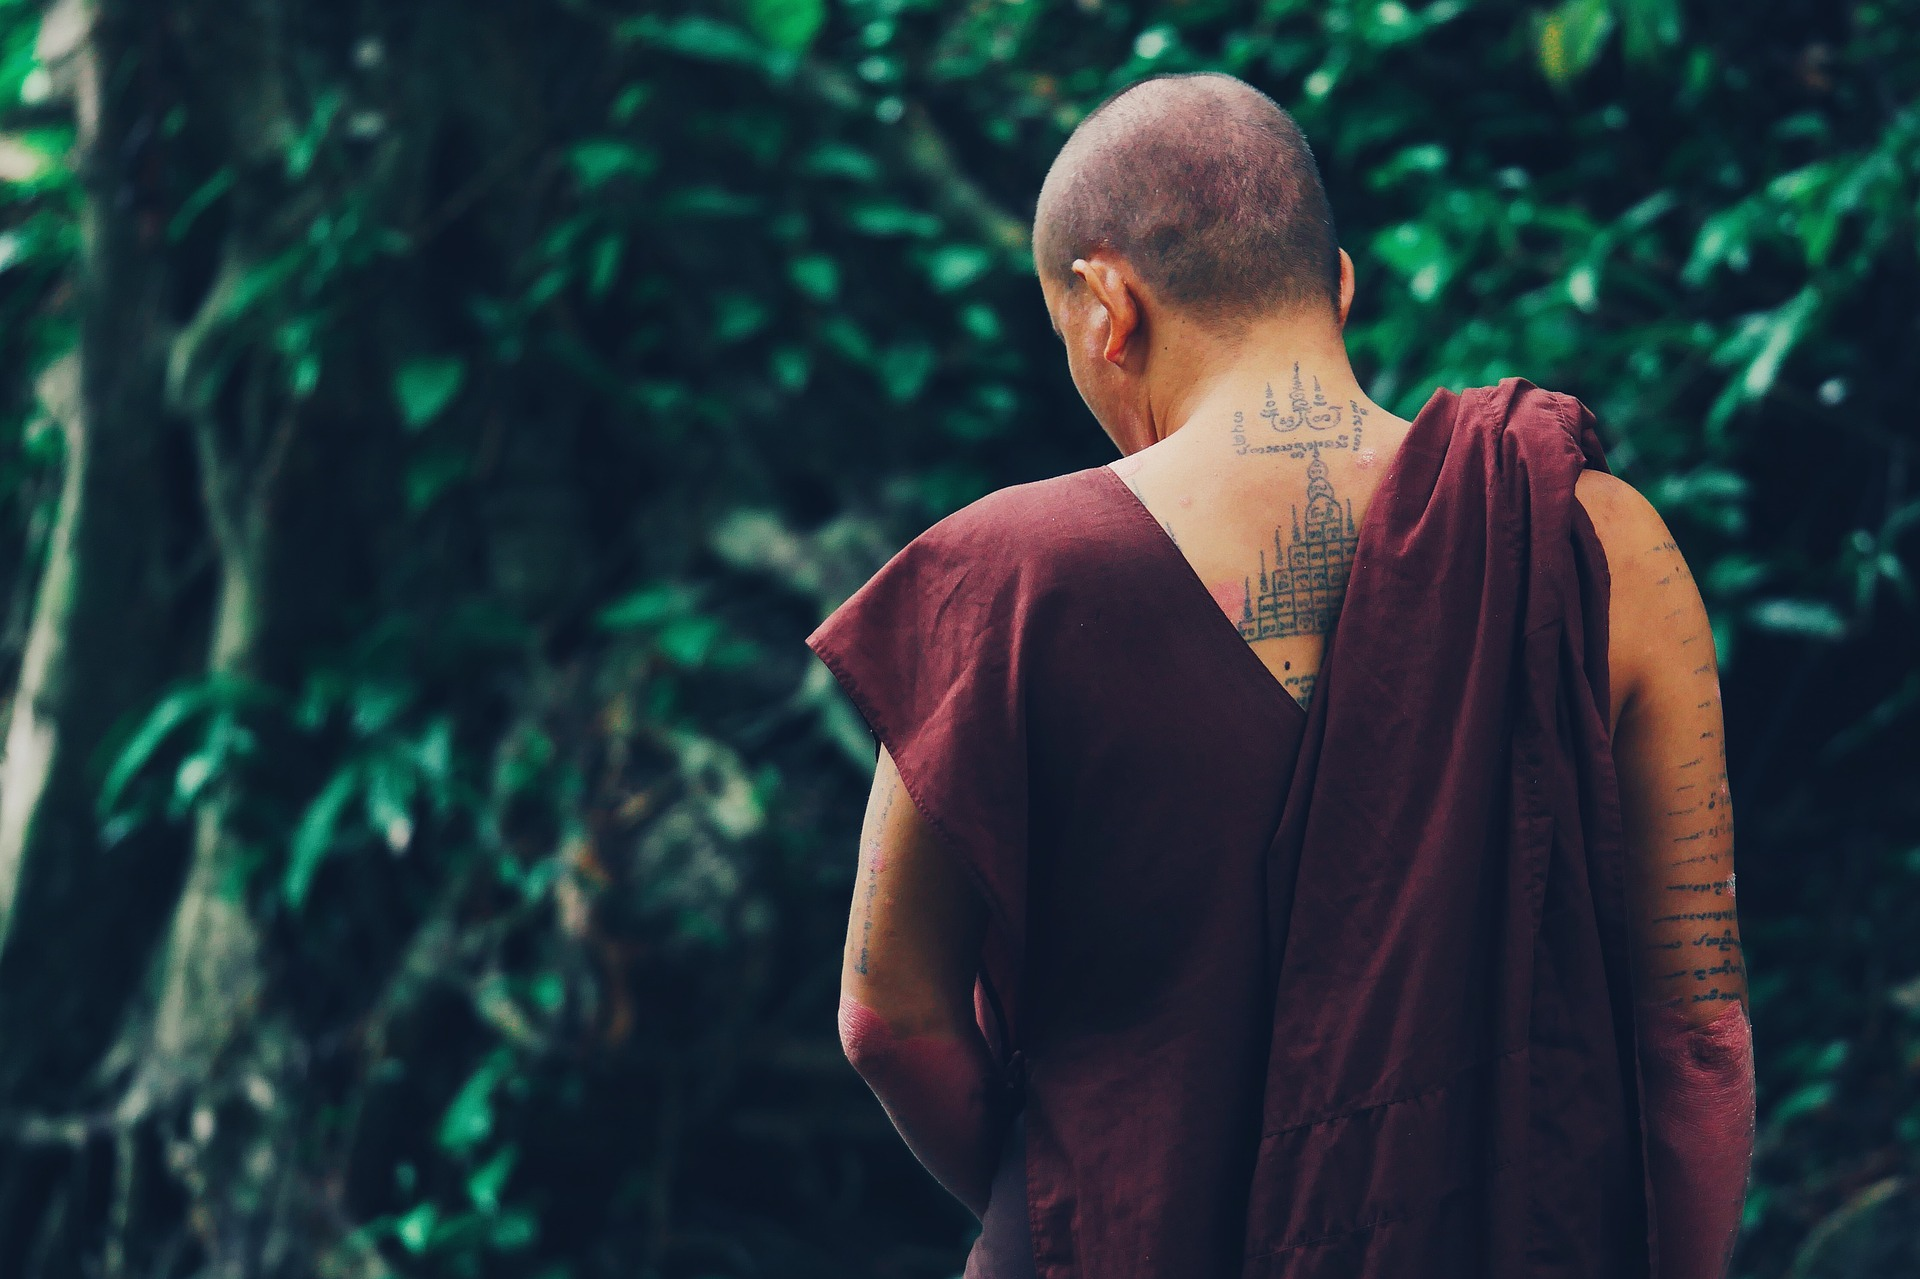 The back of a tattooed monk